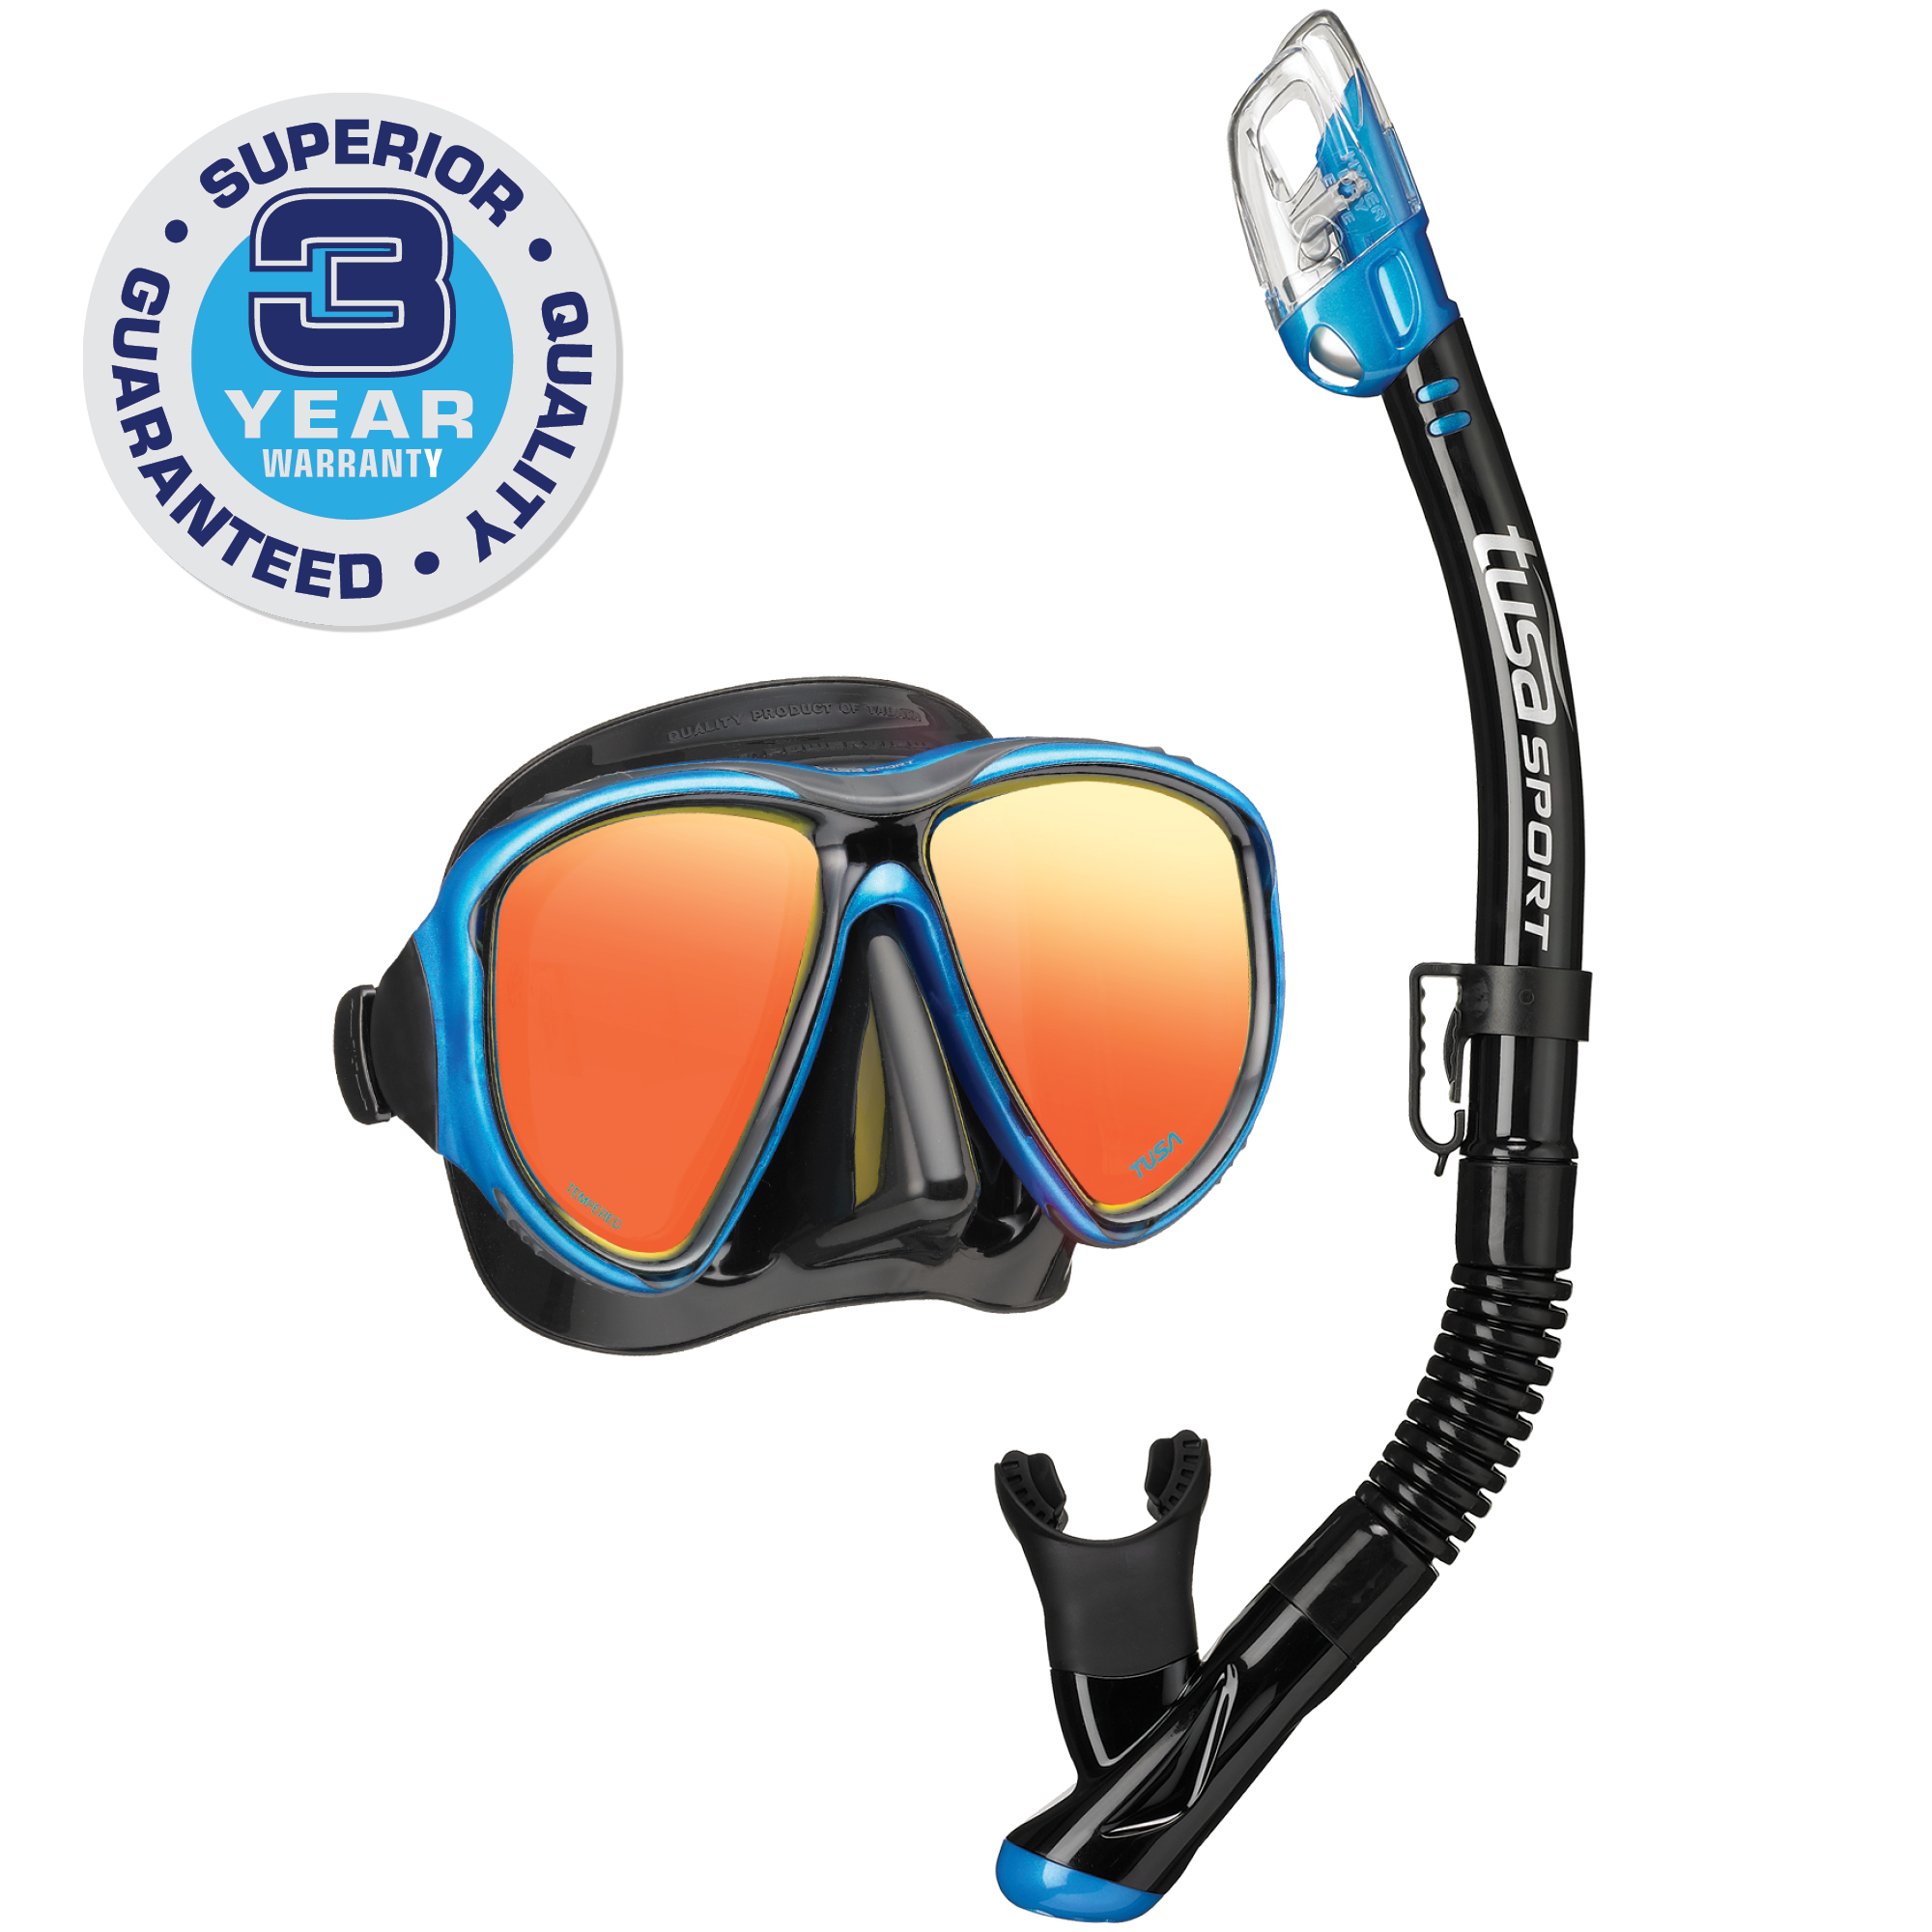 TUSA Sport Adult Powerview Mirrored Mask and Dry Snorkel Combo by Tabata USA, Inc.